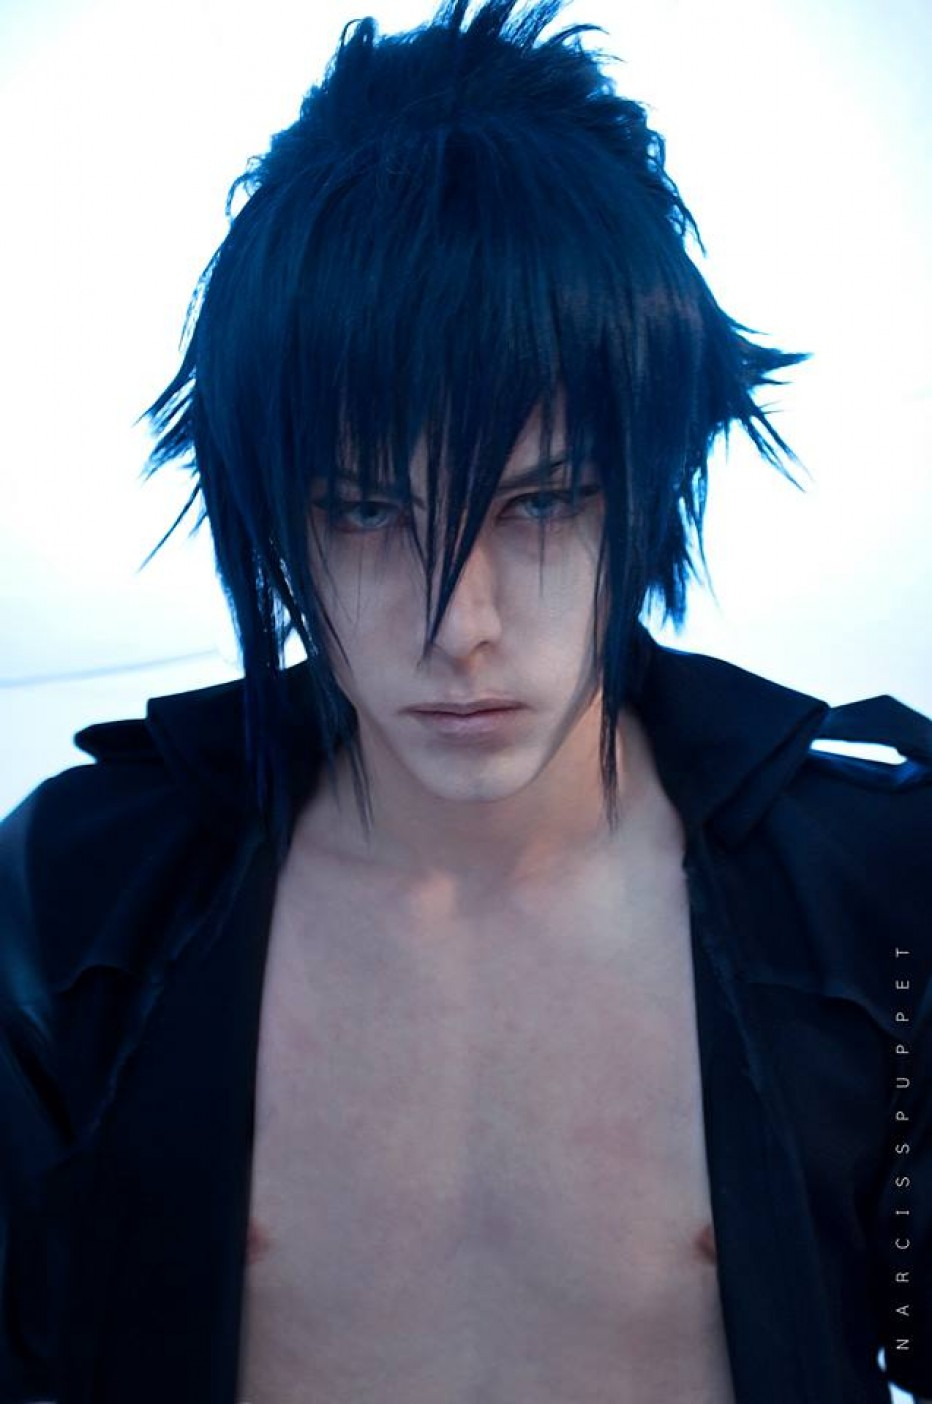 Final-Fantasy-XV-Noctis-Cosplay-3-Gamers-Heroes.jpg